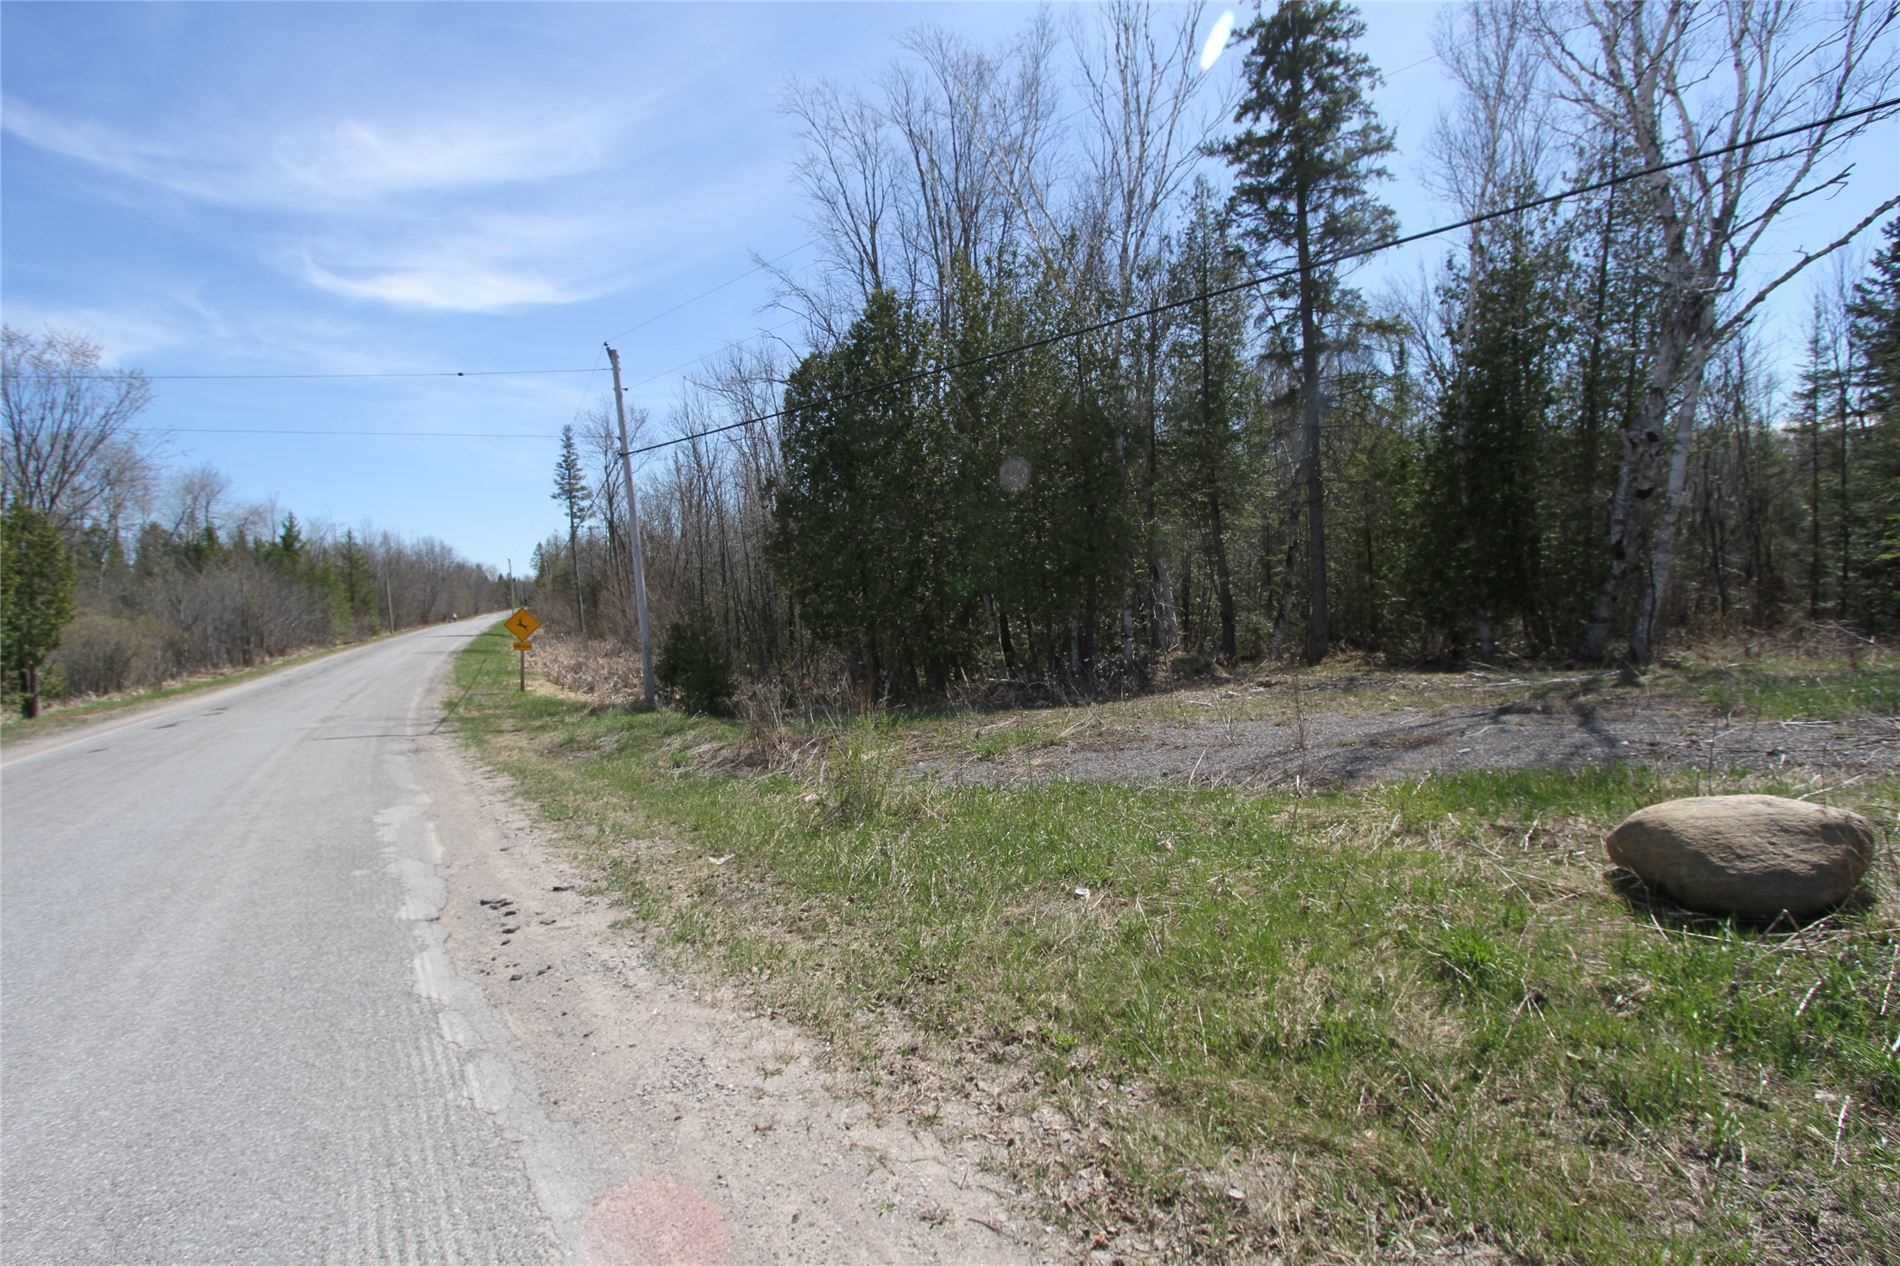 Main Photo: 259 County Rd 41 Road in Kawartha Lakes: Rural Bexley Property for sale : MLS®# X5210398